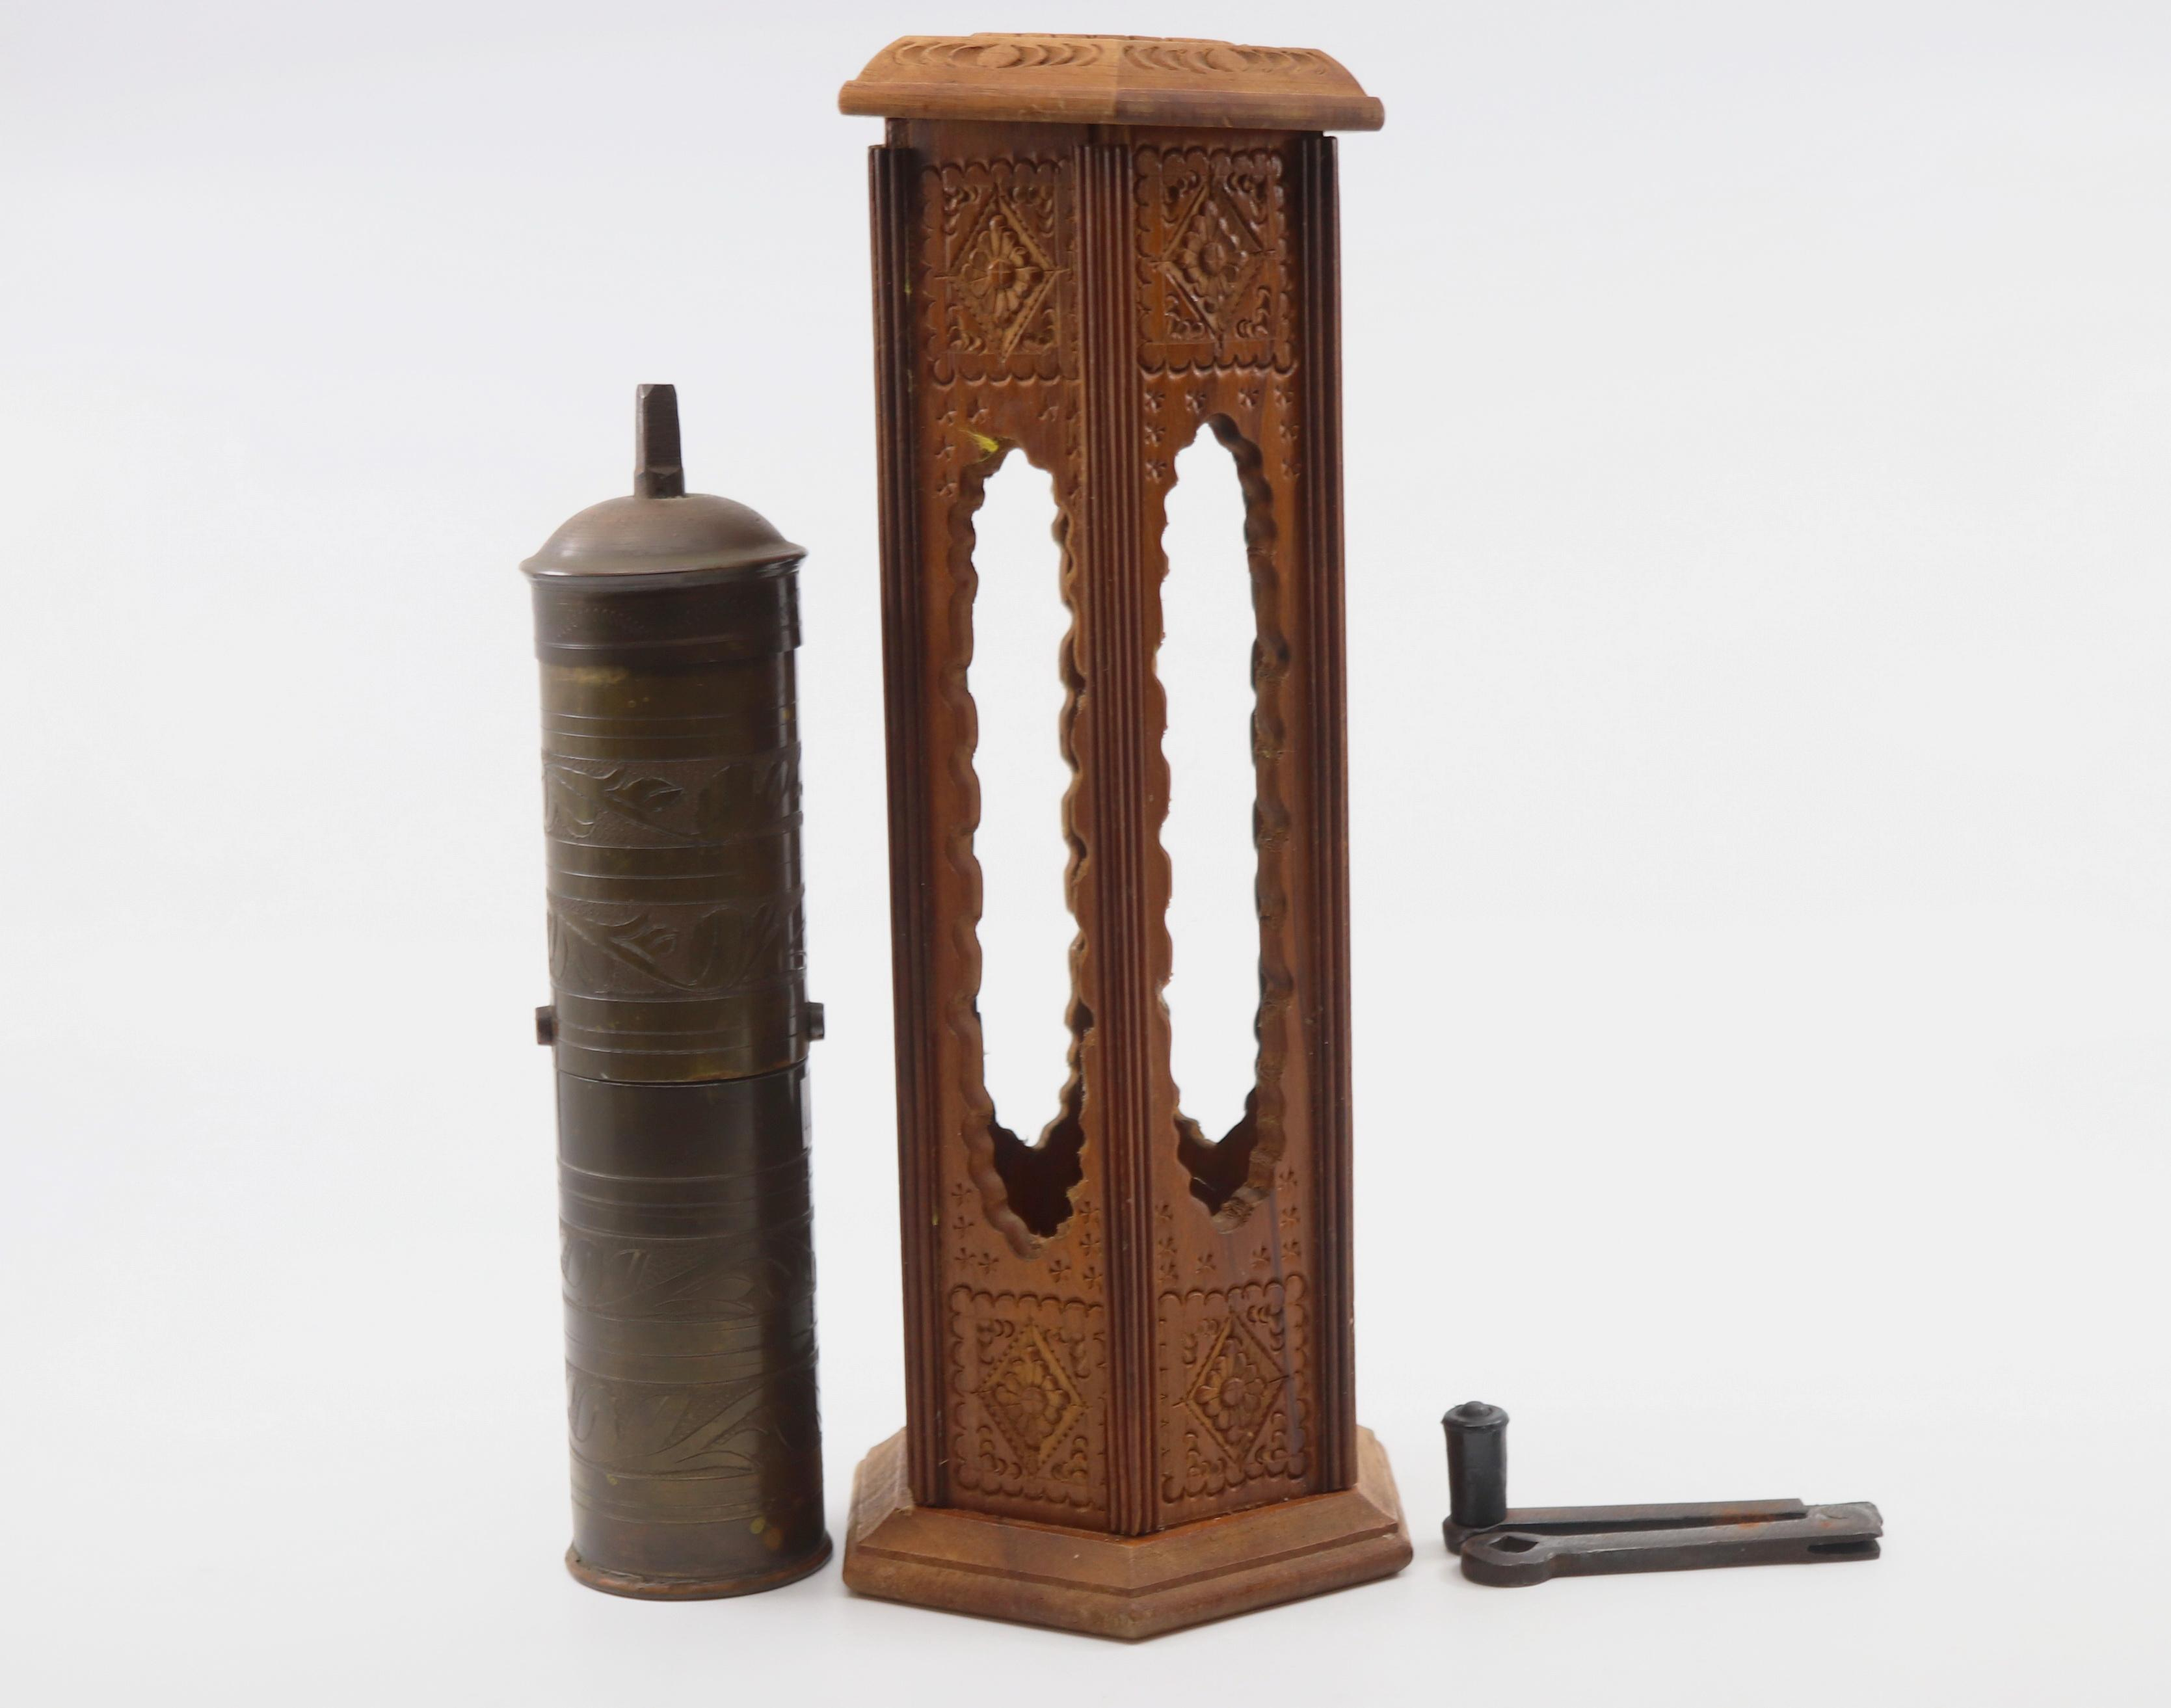 BRASS COFFEE GRINDER IN WOODEN CARVED CASE